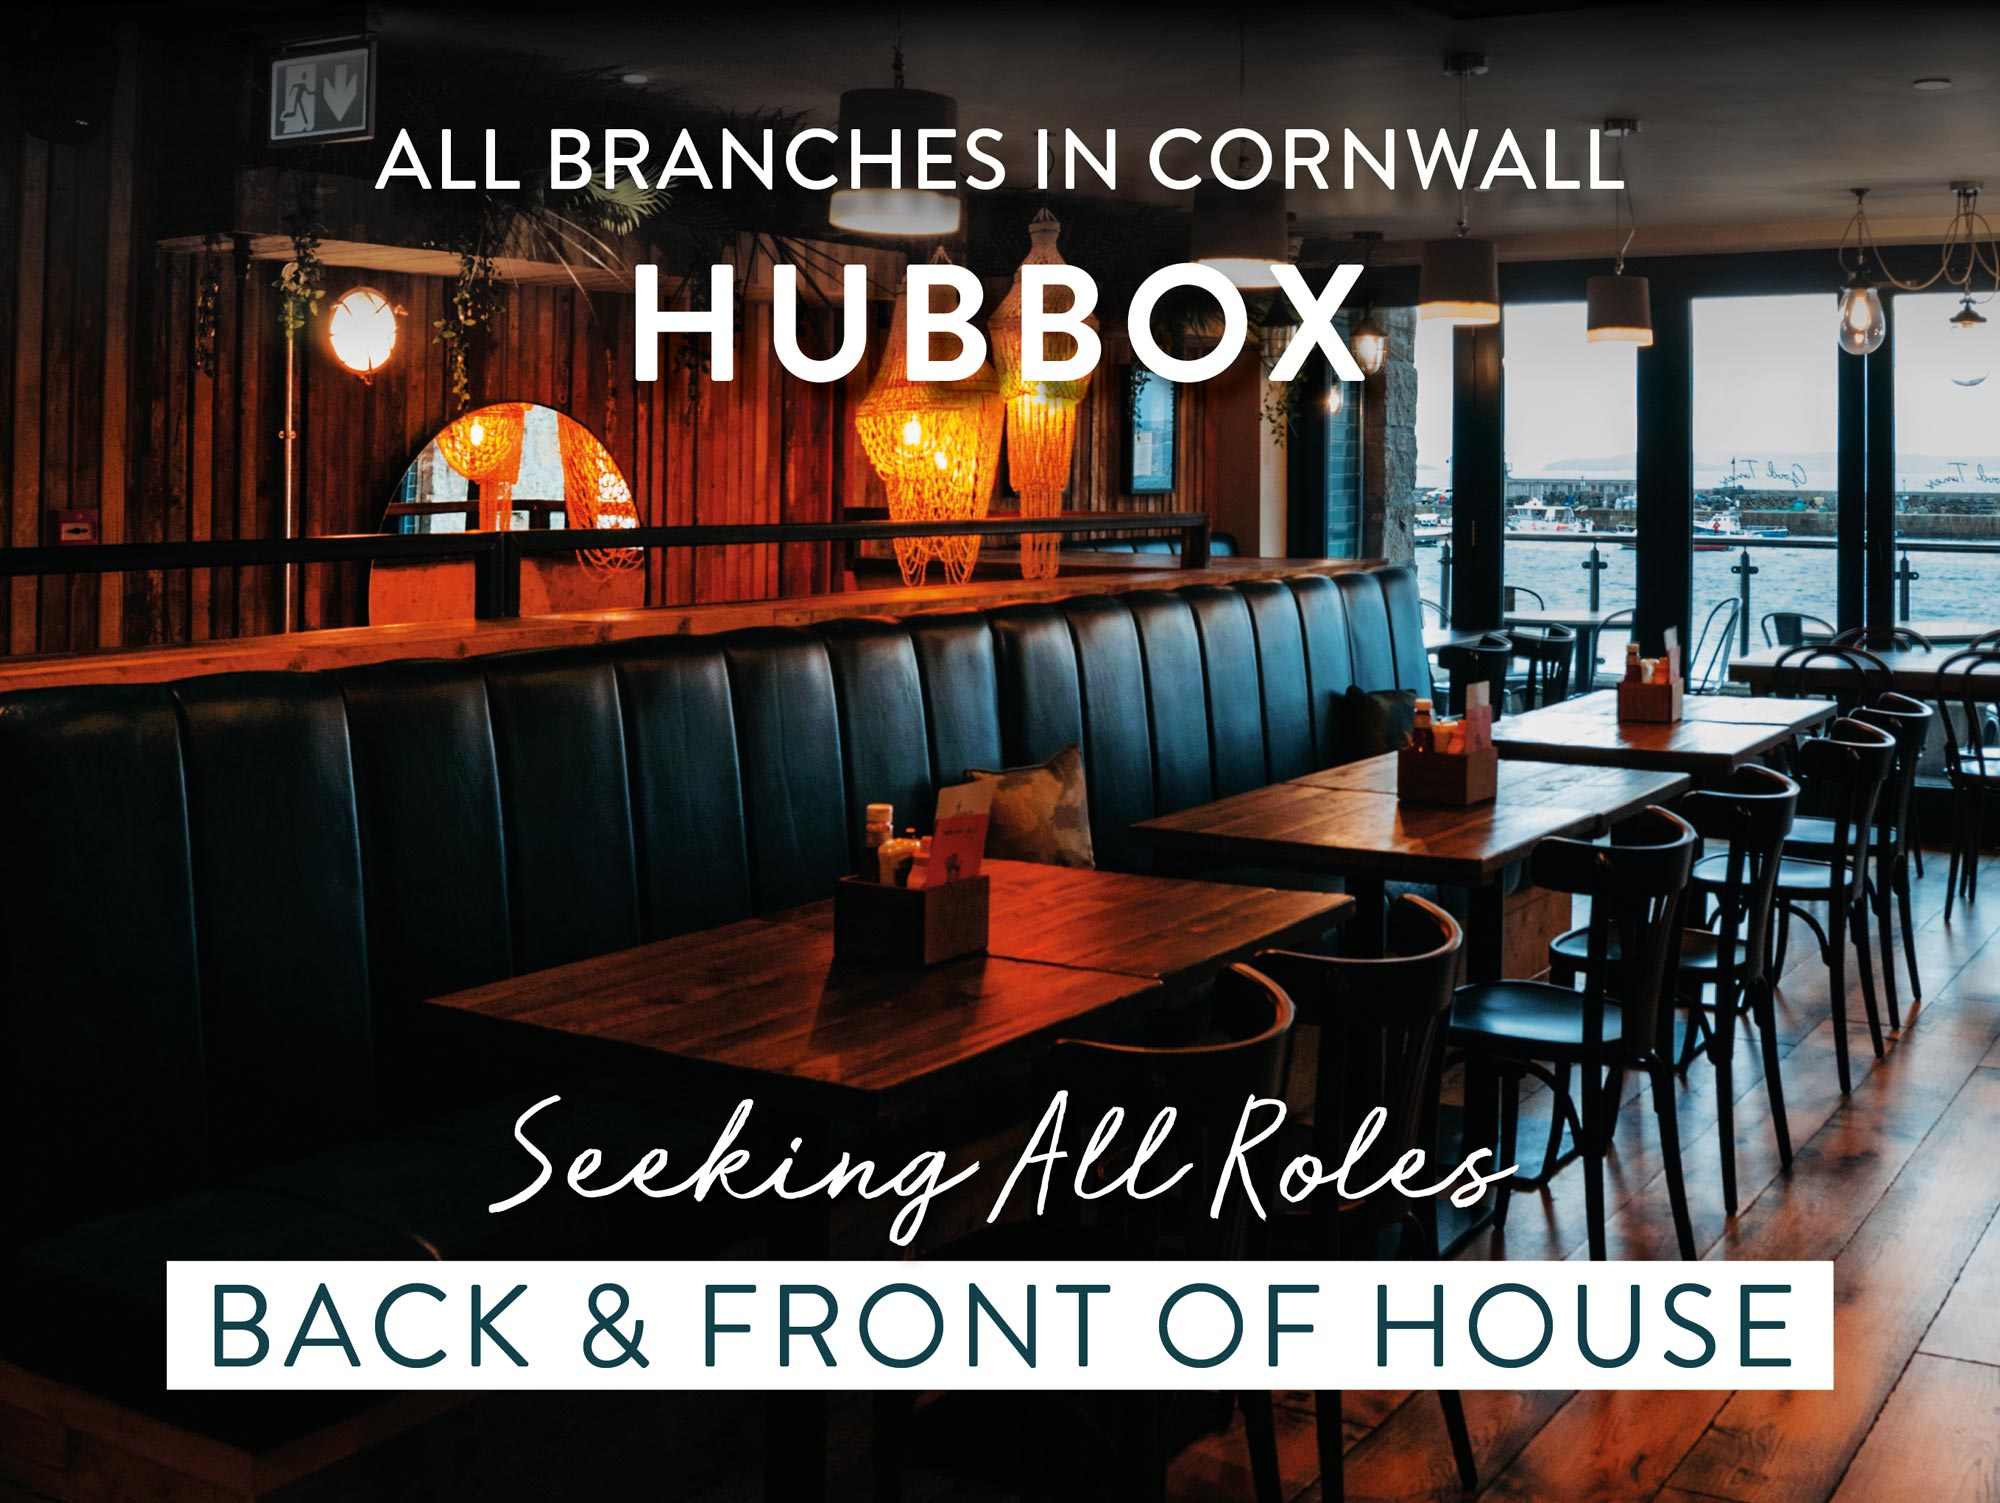 Hubbox Cornwall general recruitment